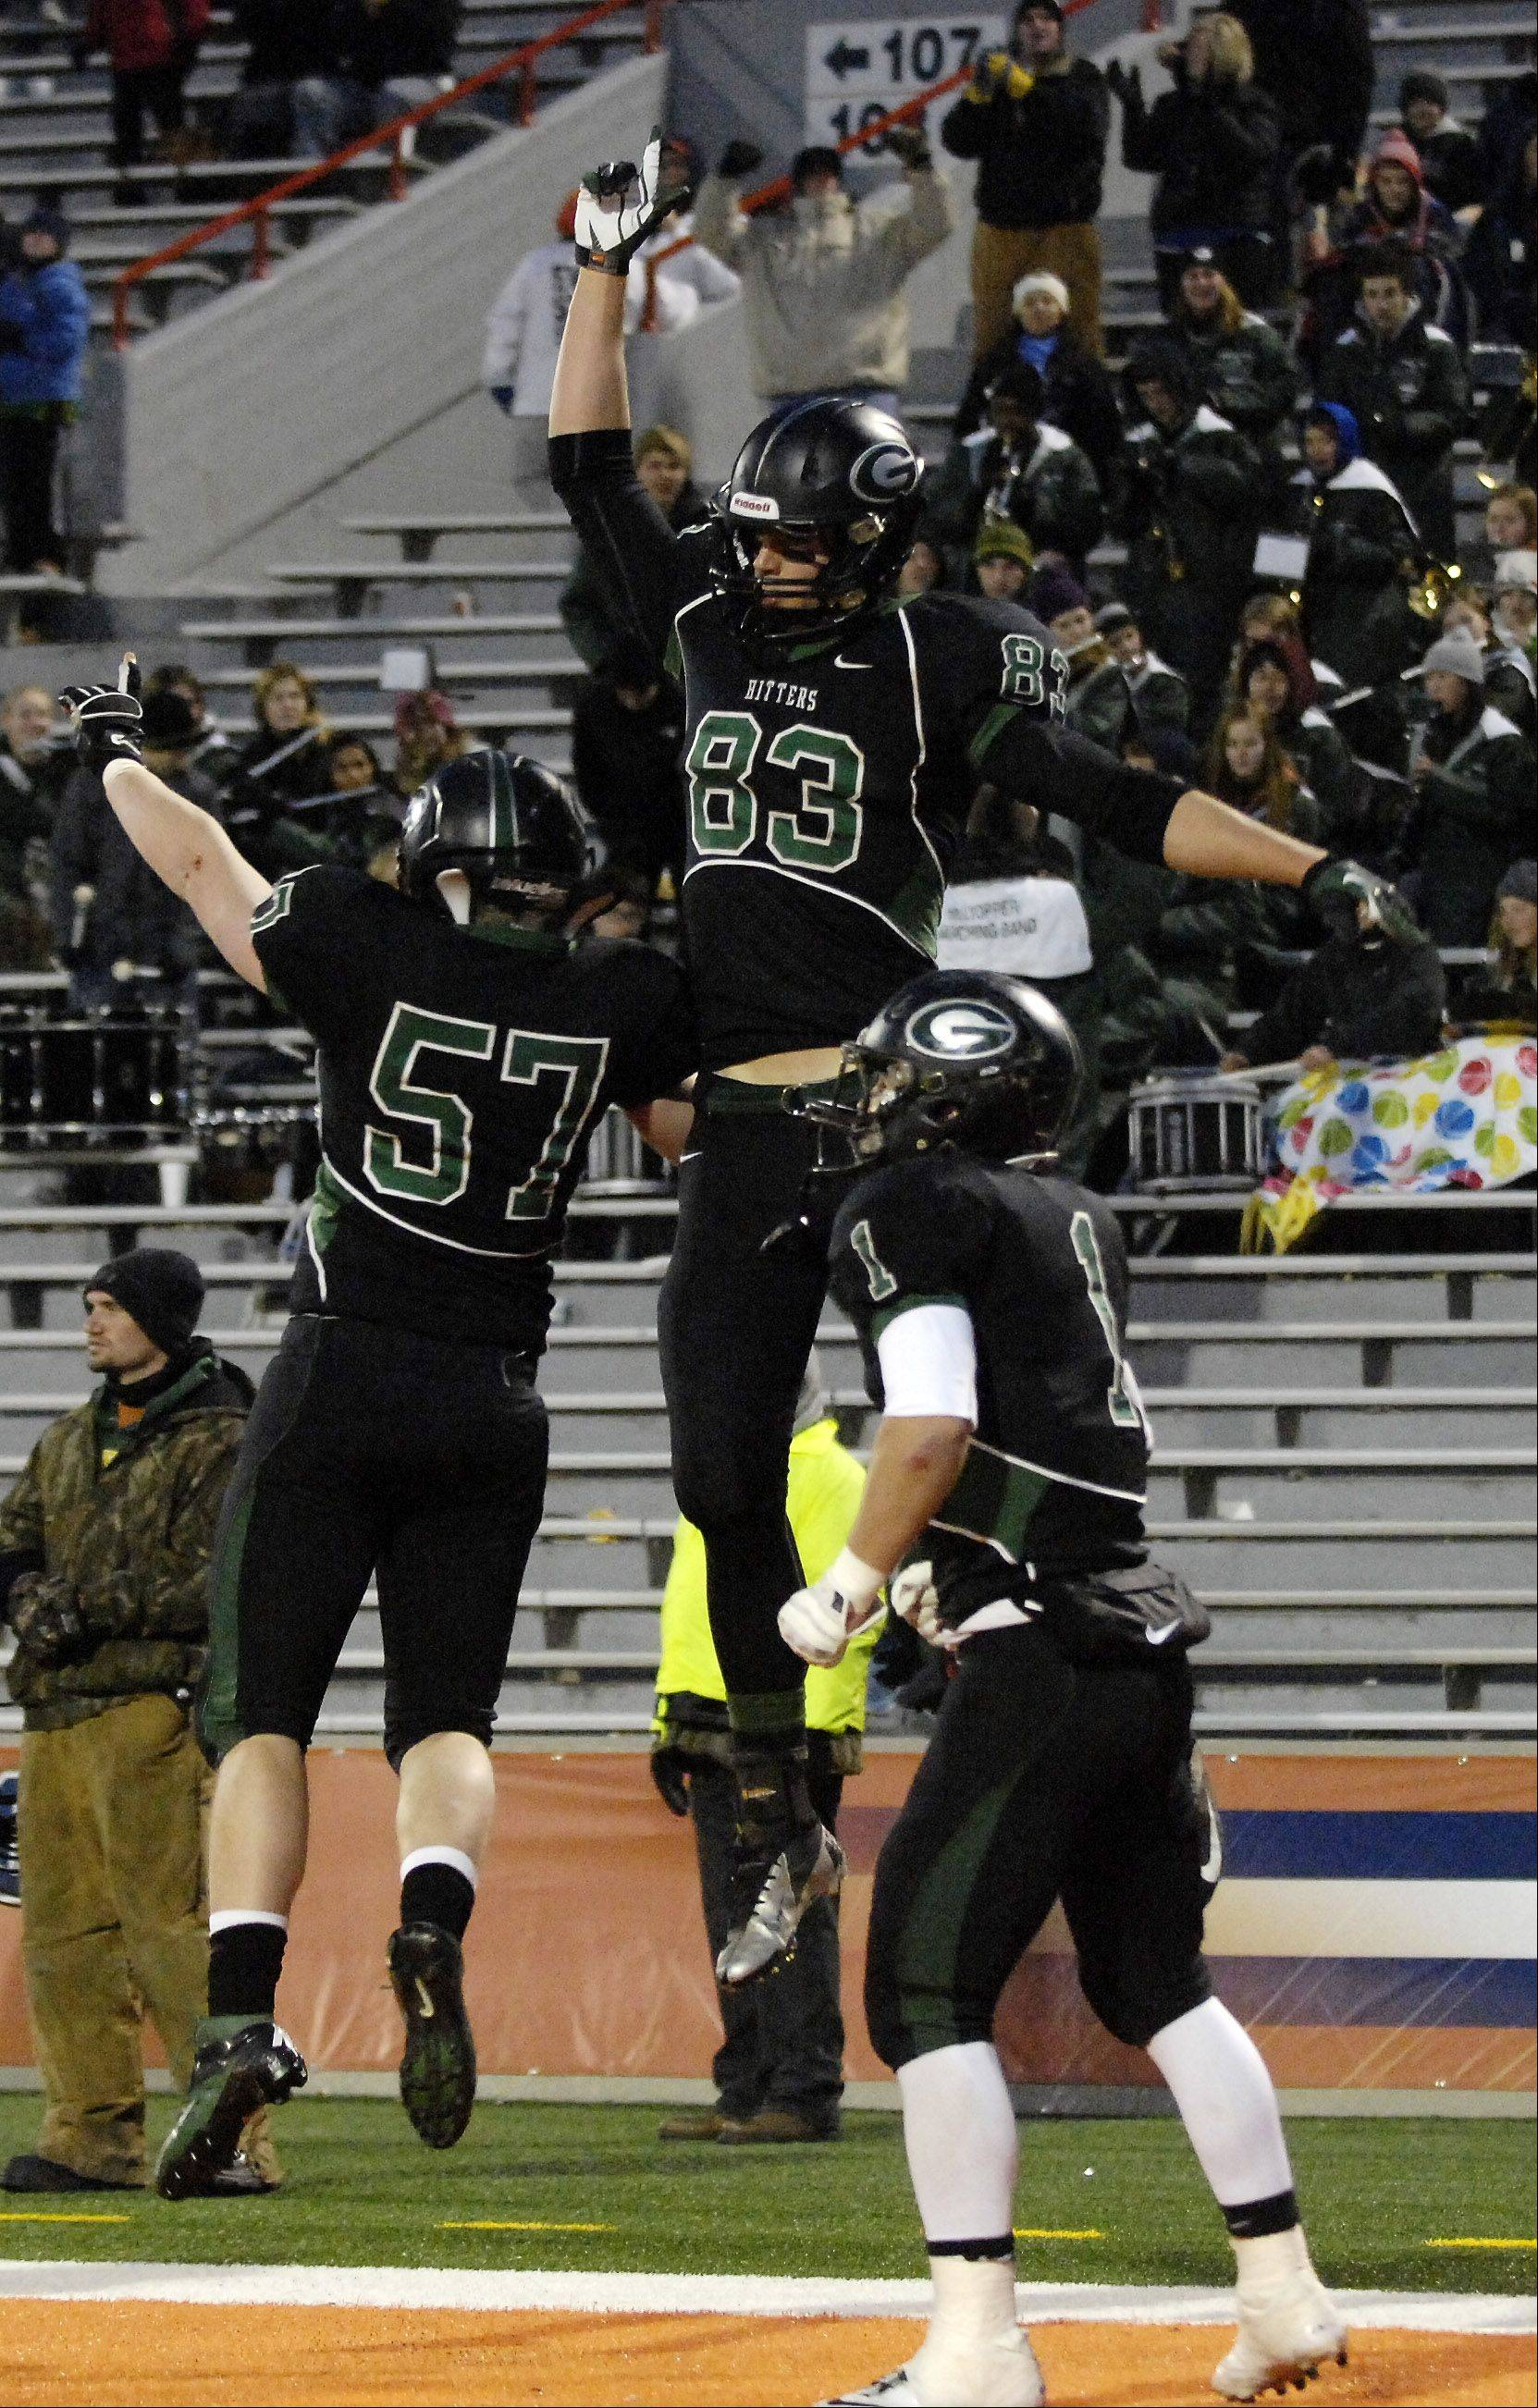 Glenbard West's Nathan Marcus, 83, celebrates his touchdown with teammates Jack Manzella, 57, and Joseph Zito during Saturday's Class 7A state title game at Memorial Stadium in Champaign.